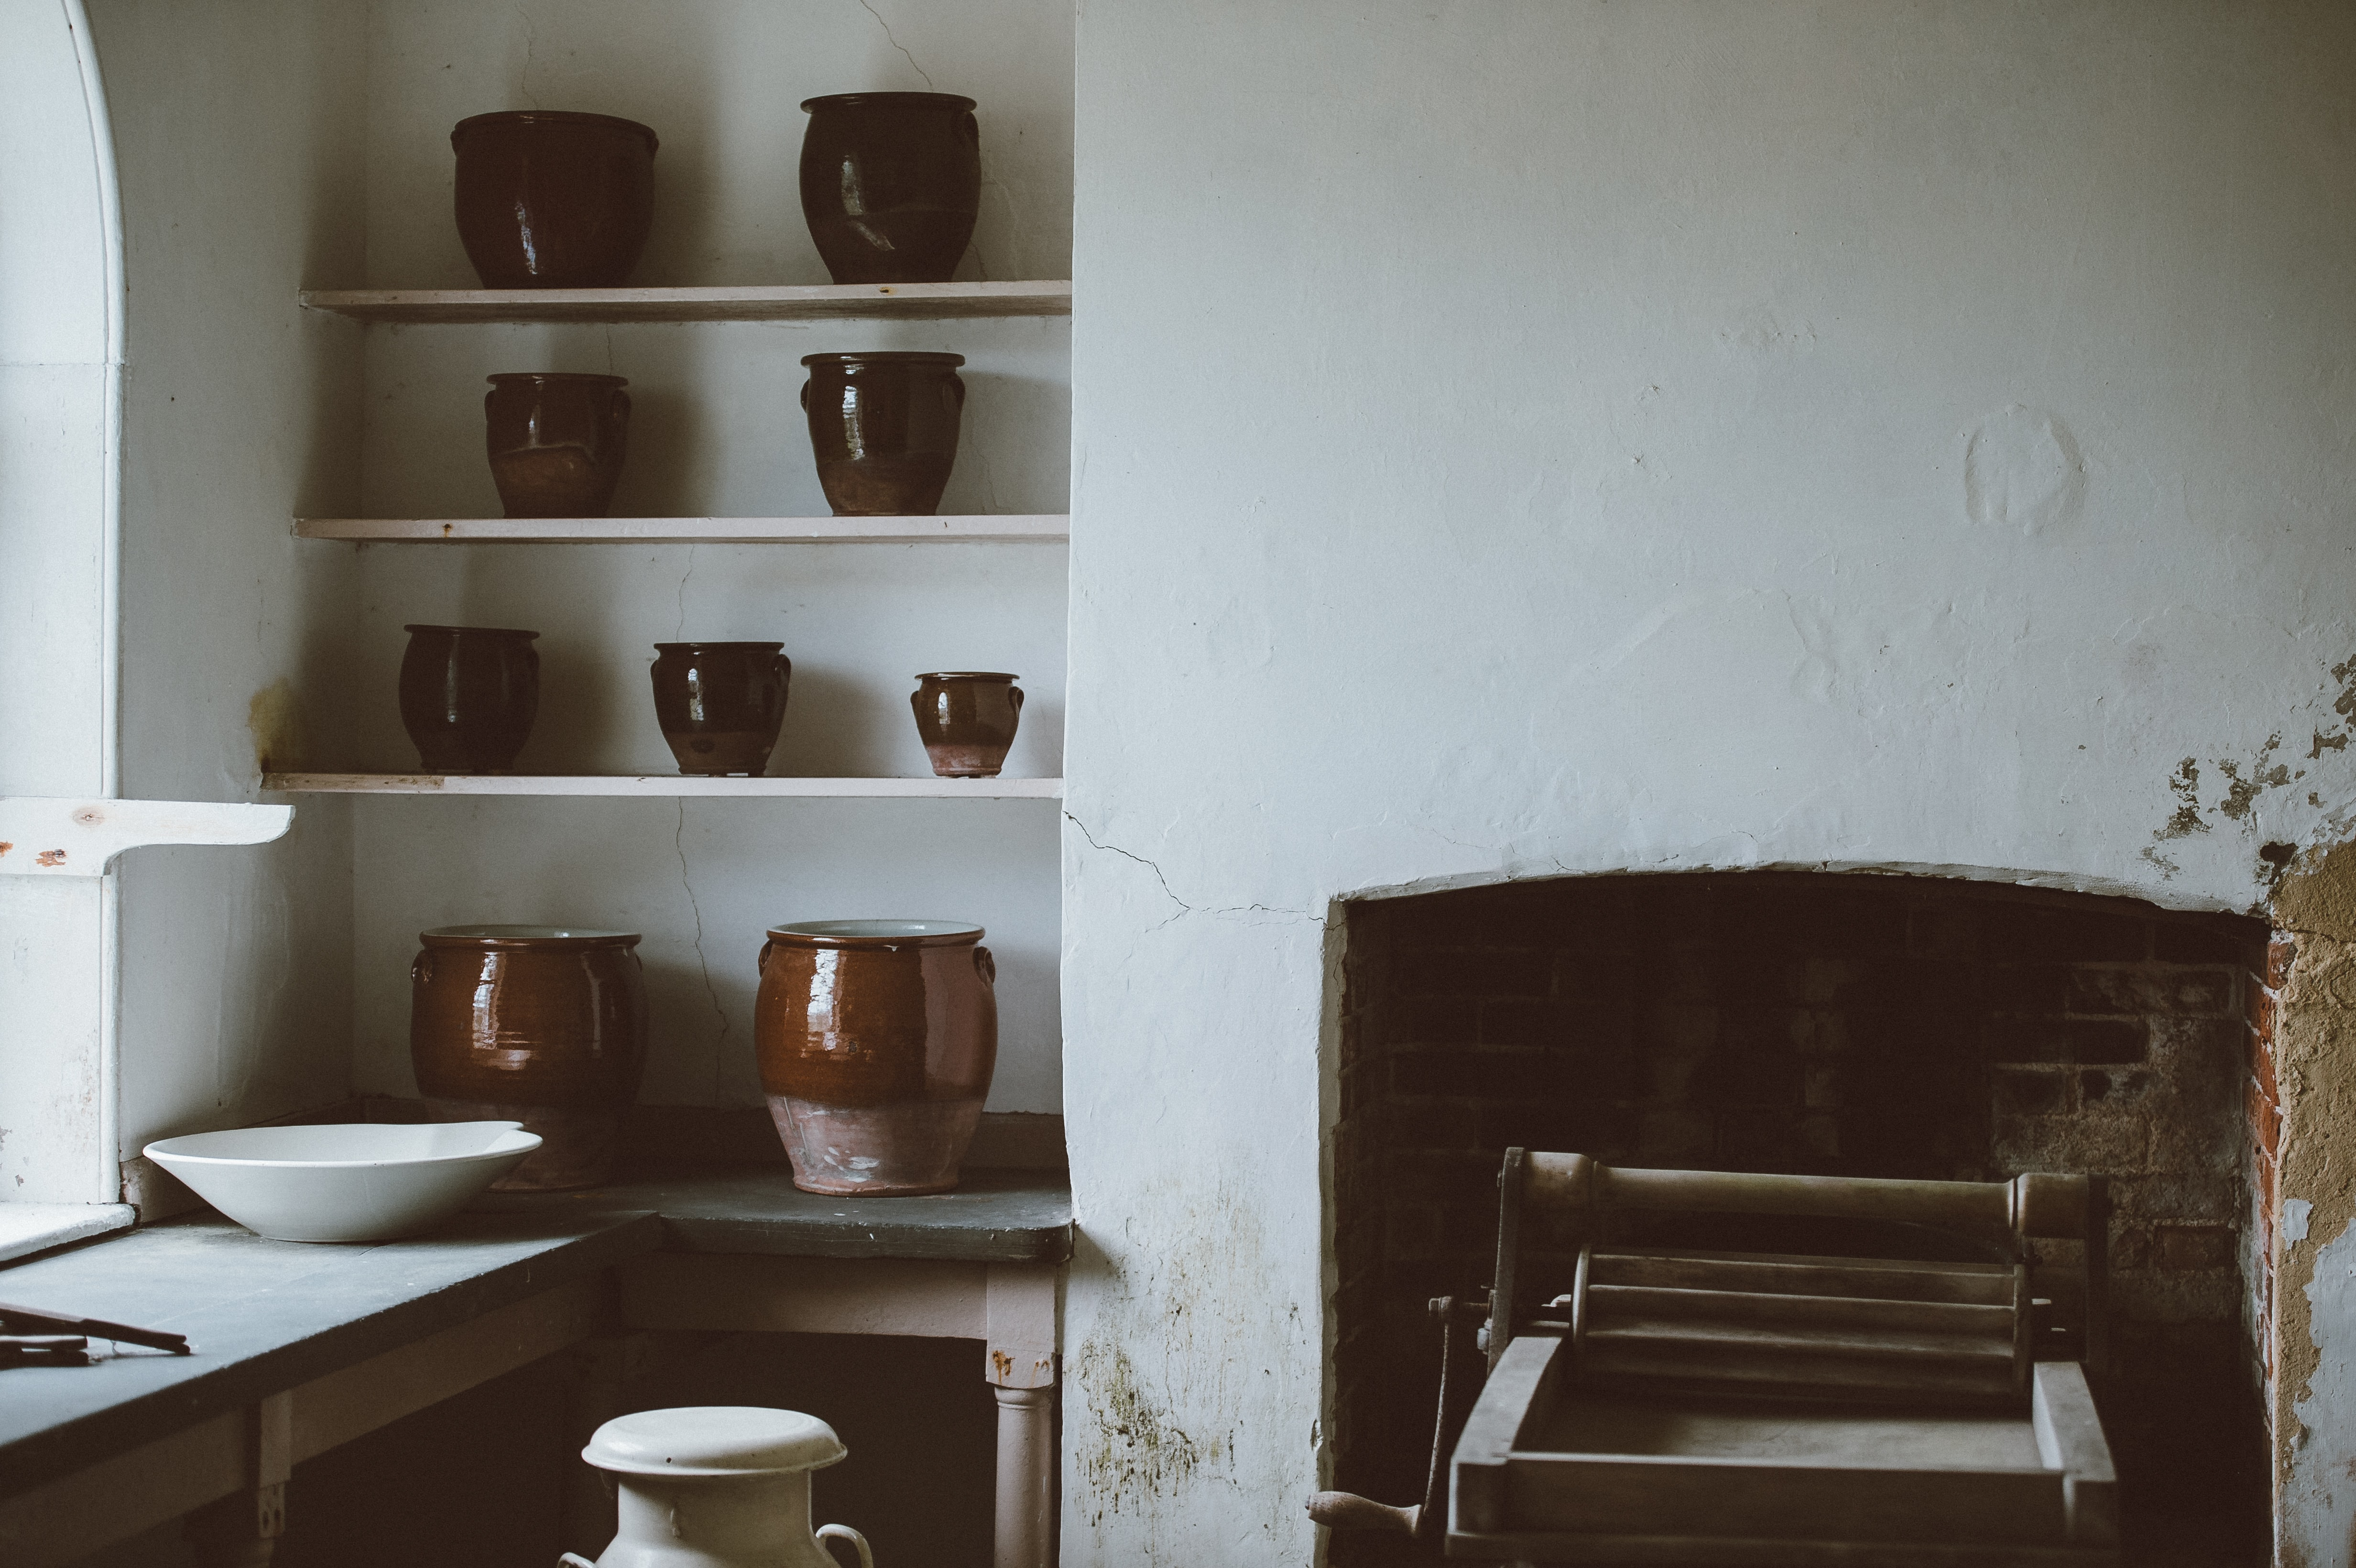 photo of brown clay pots on rack in kitchen